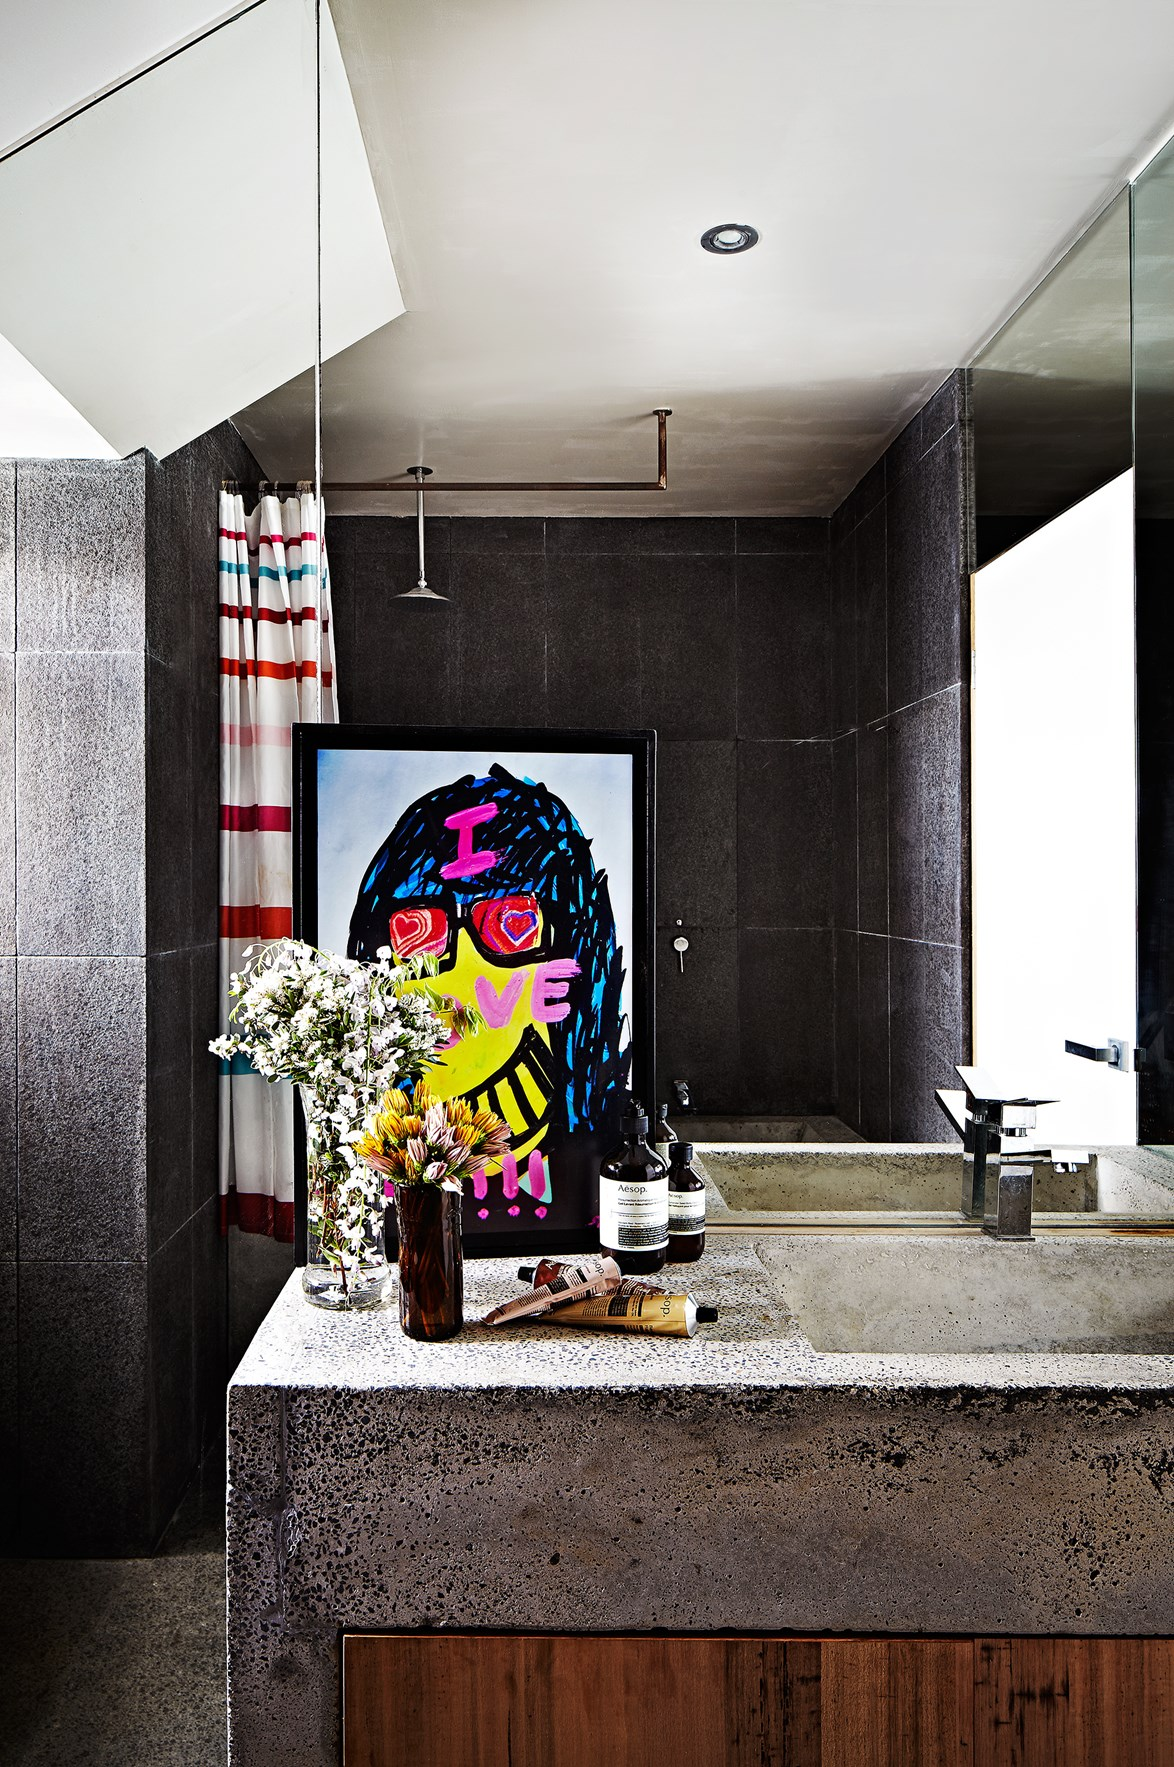 Too much concrete can sometimes feel cold and harsh but not in this bathroom. Softened with timber and bold artwork, this concrete-clad bathroom gives off an edgy, industrial vibe. Photo: Armelle Habib / *real living*